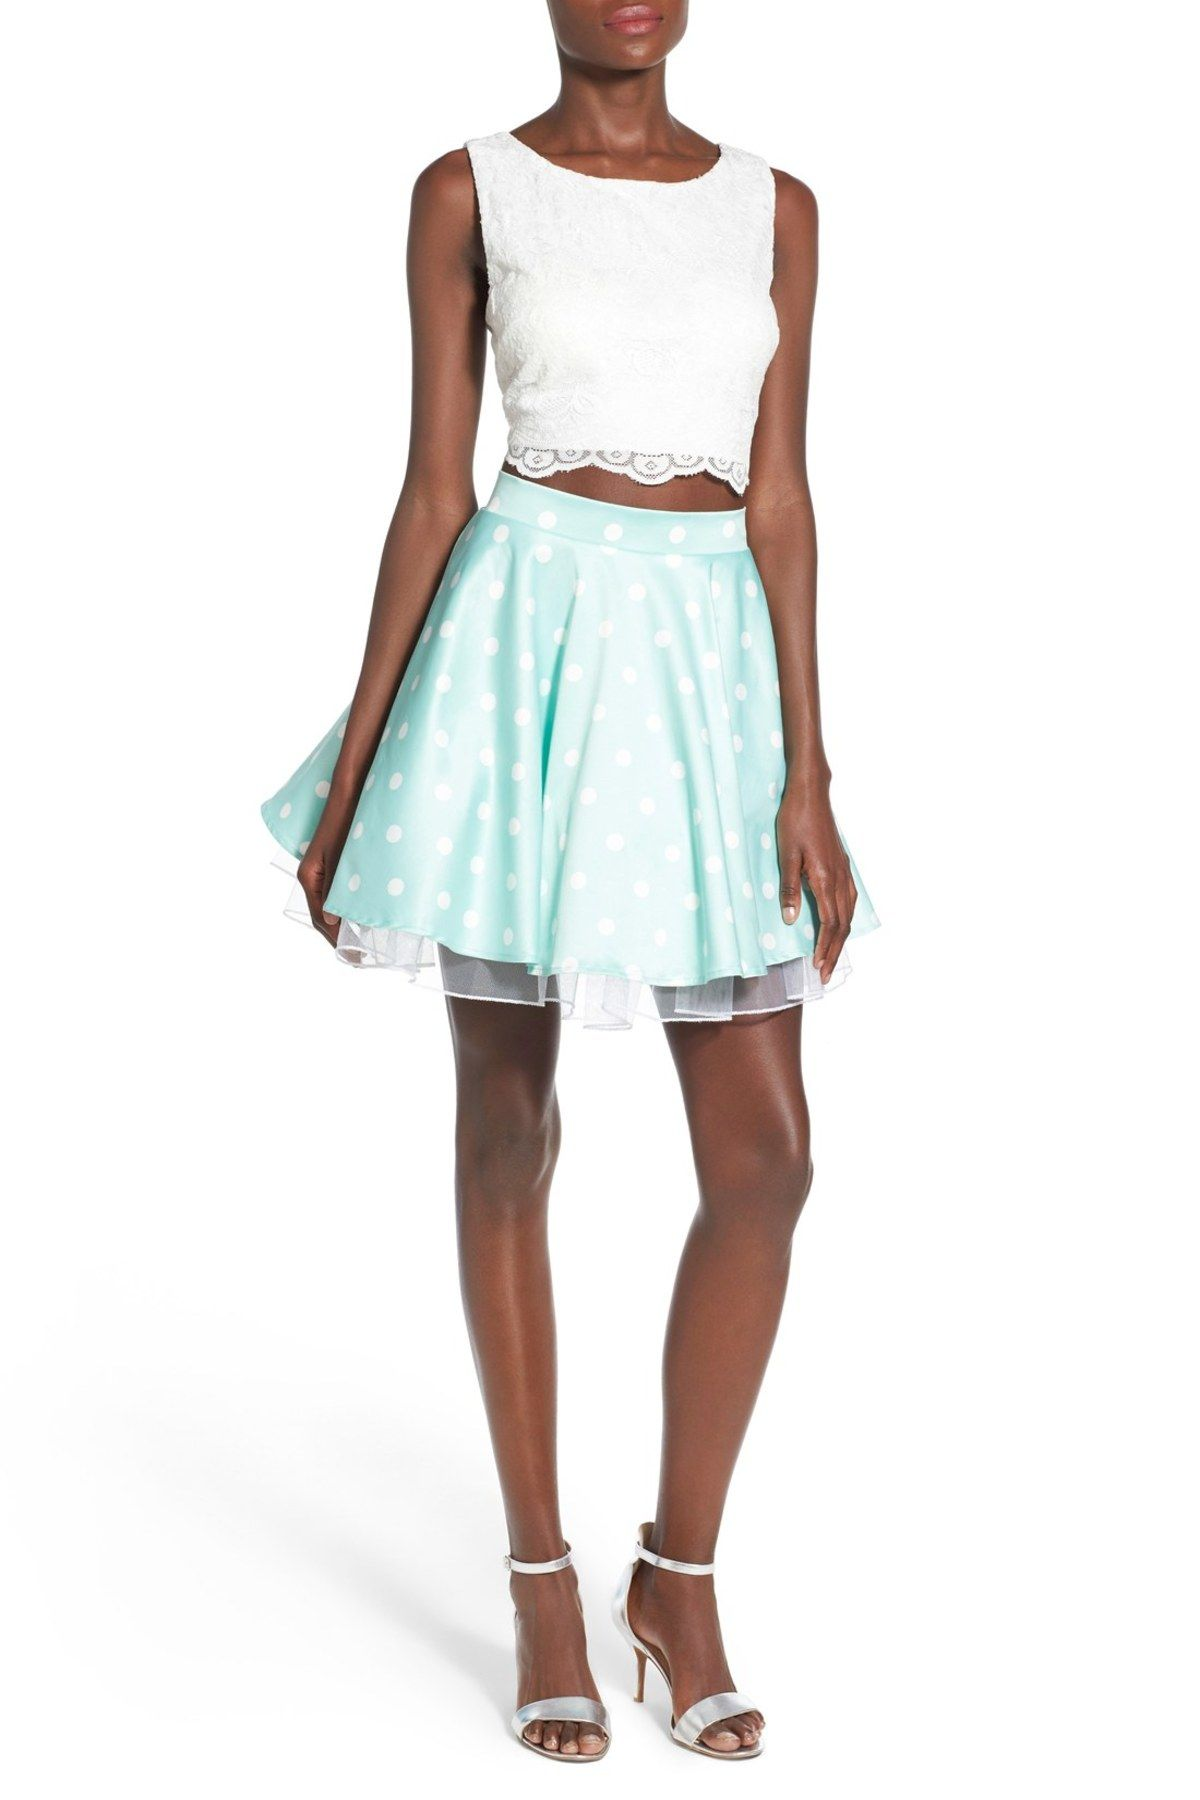 City triangles lace flared skirt twopiece dress juniors high